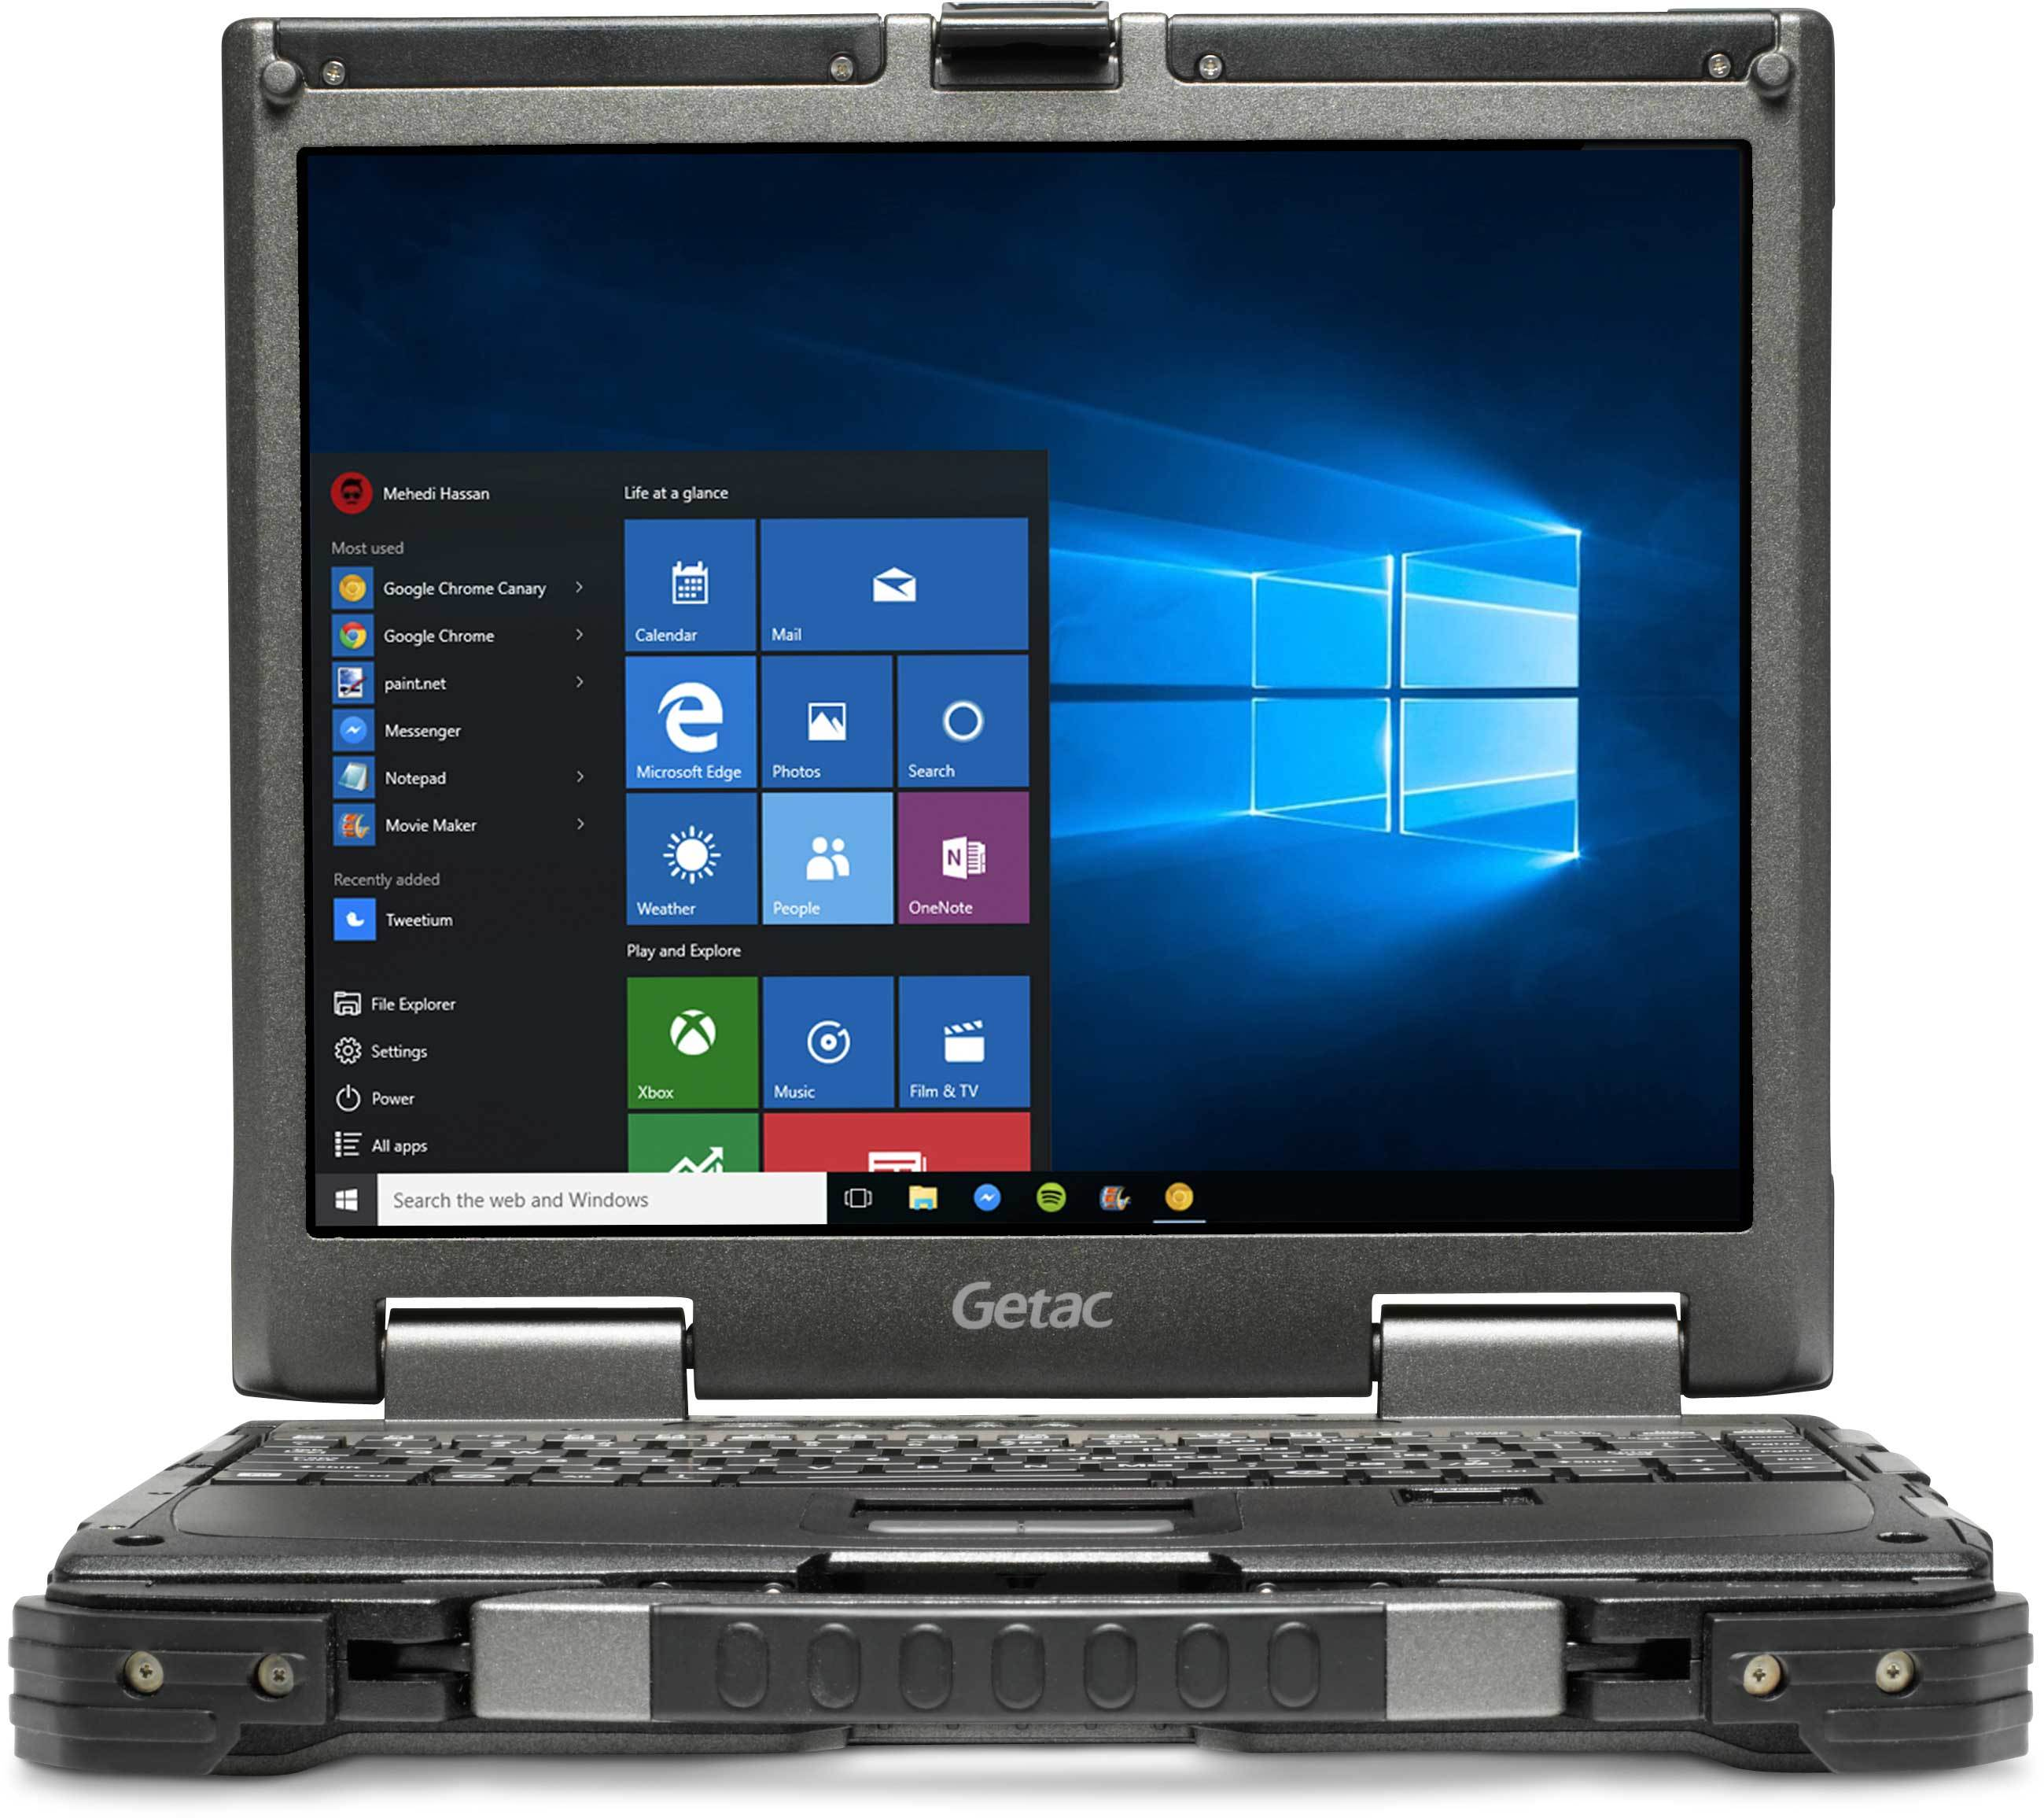 Getac B300 Is A Super Rugged Intel Skylake Powered Windows